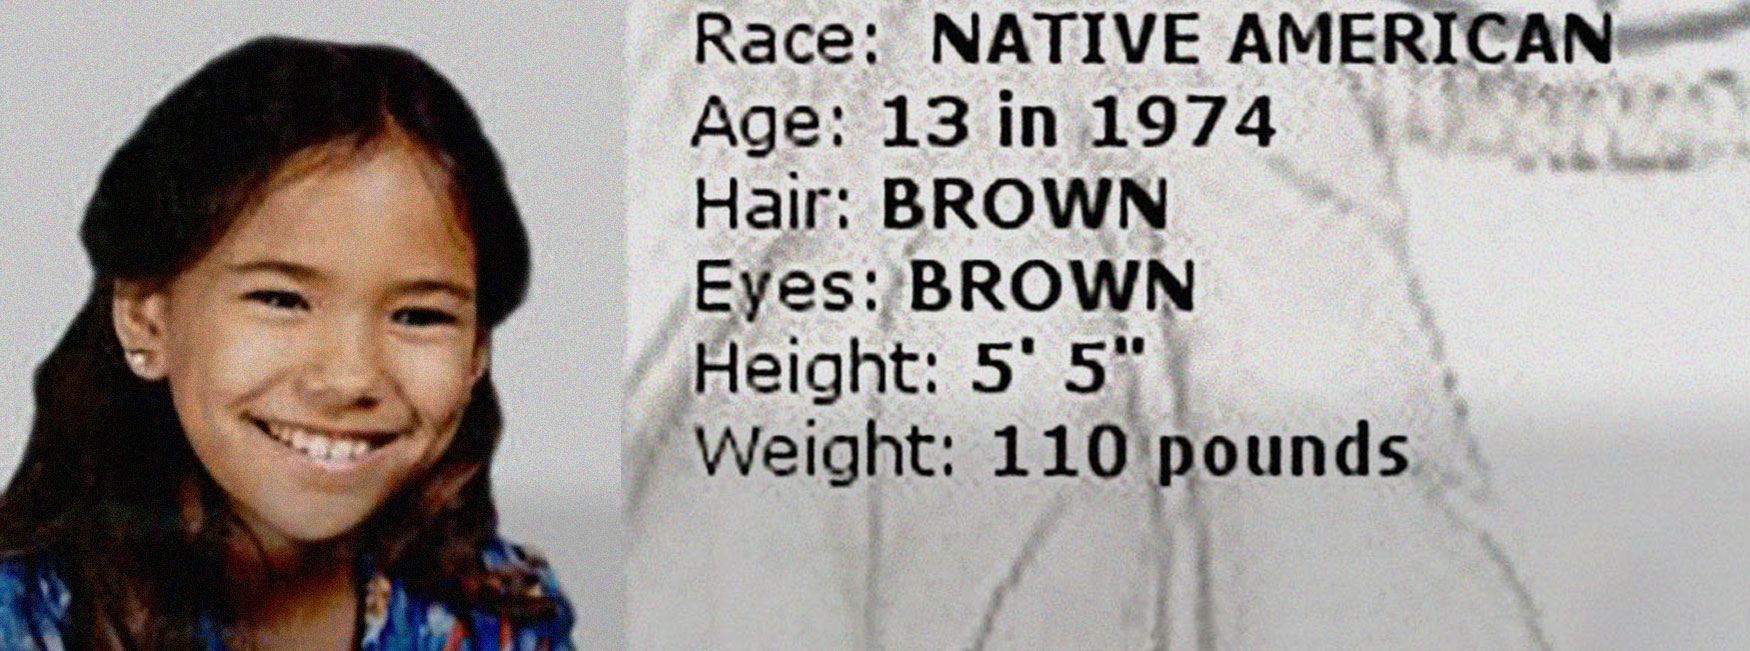 Haunting stories behind missing posters of Native women and